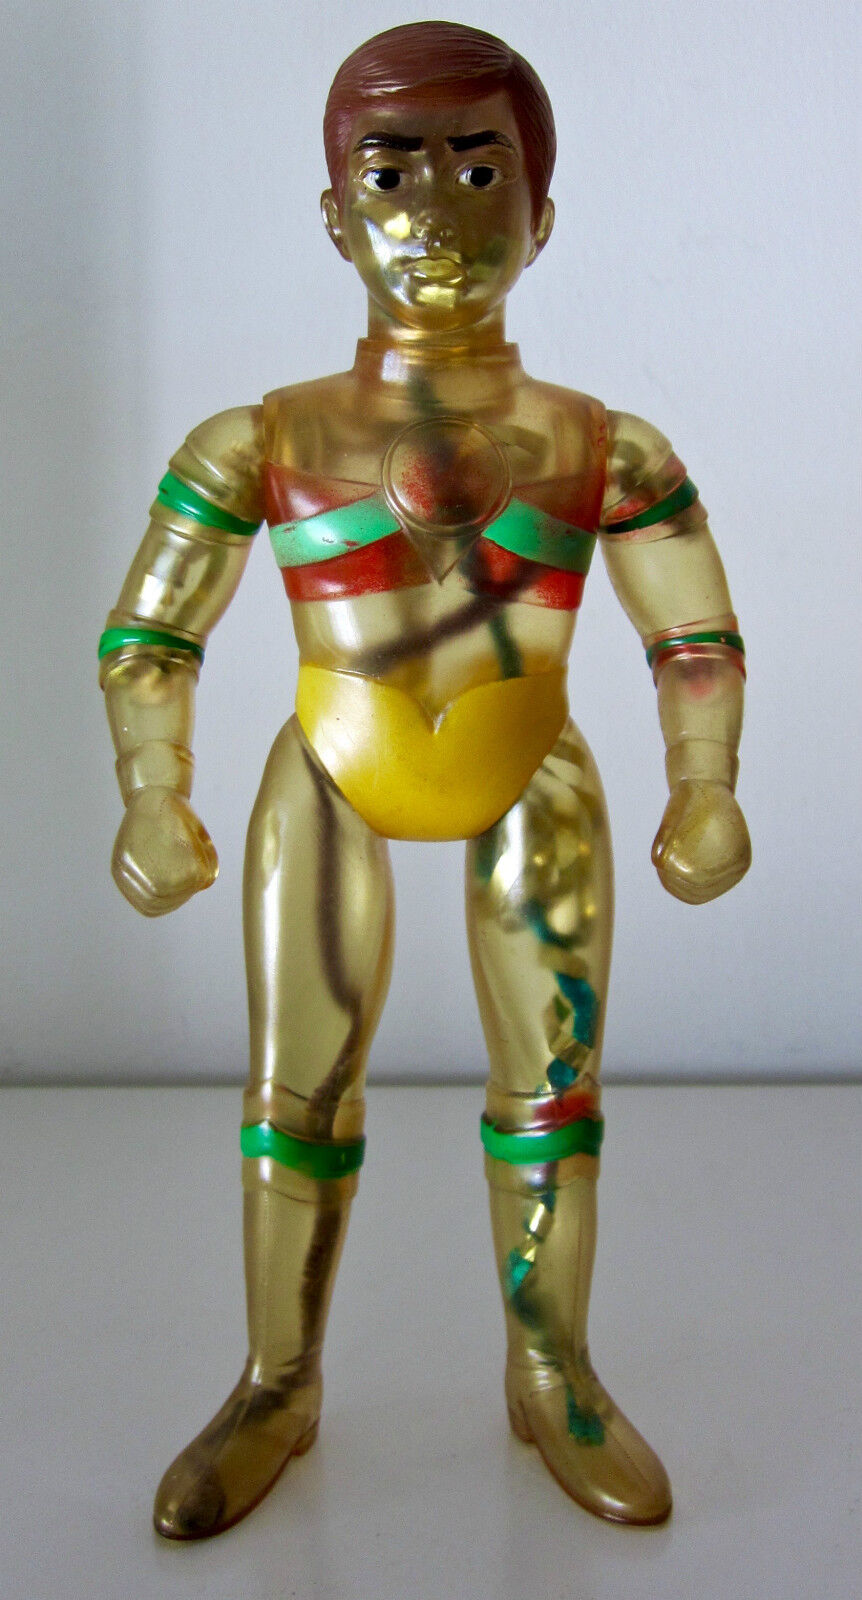 BULLMARK VINTAGE VINTAGE VINTAGE TRIPLE FIGHTER VINYL (NO MASK) 12 . 1972. VERY RARE SOFUBI 4c6973